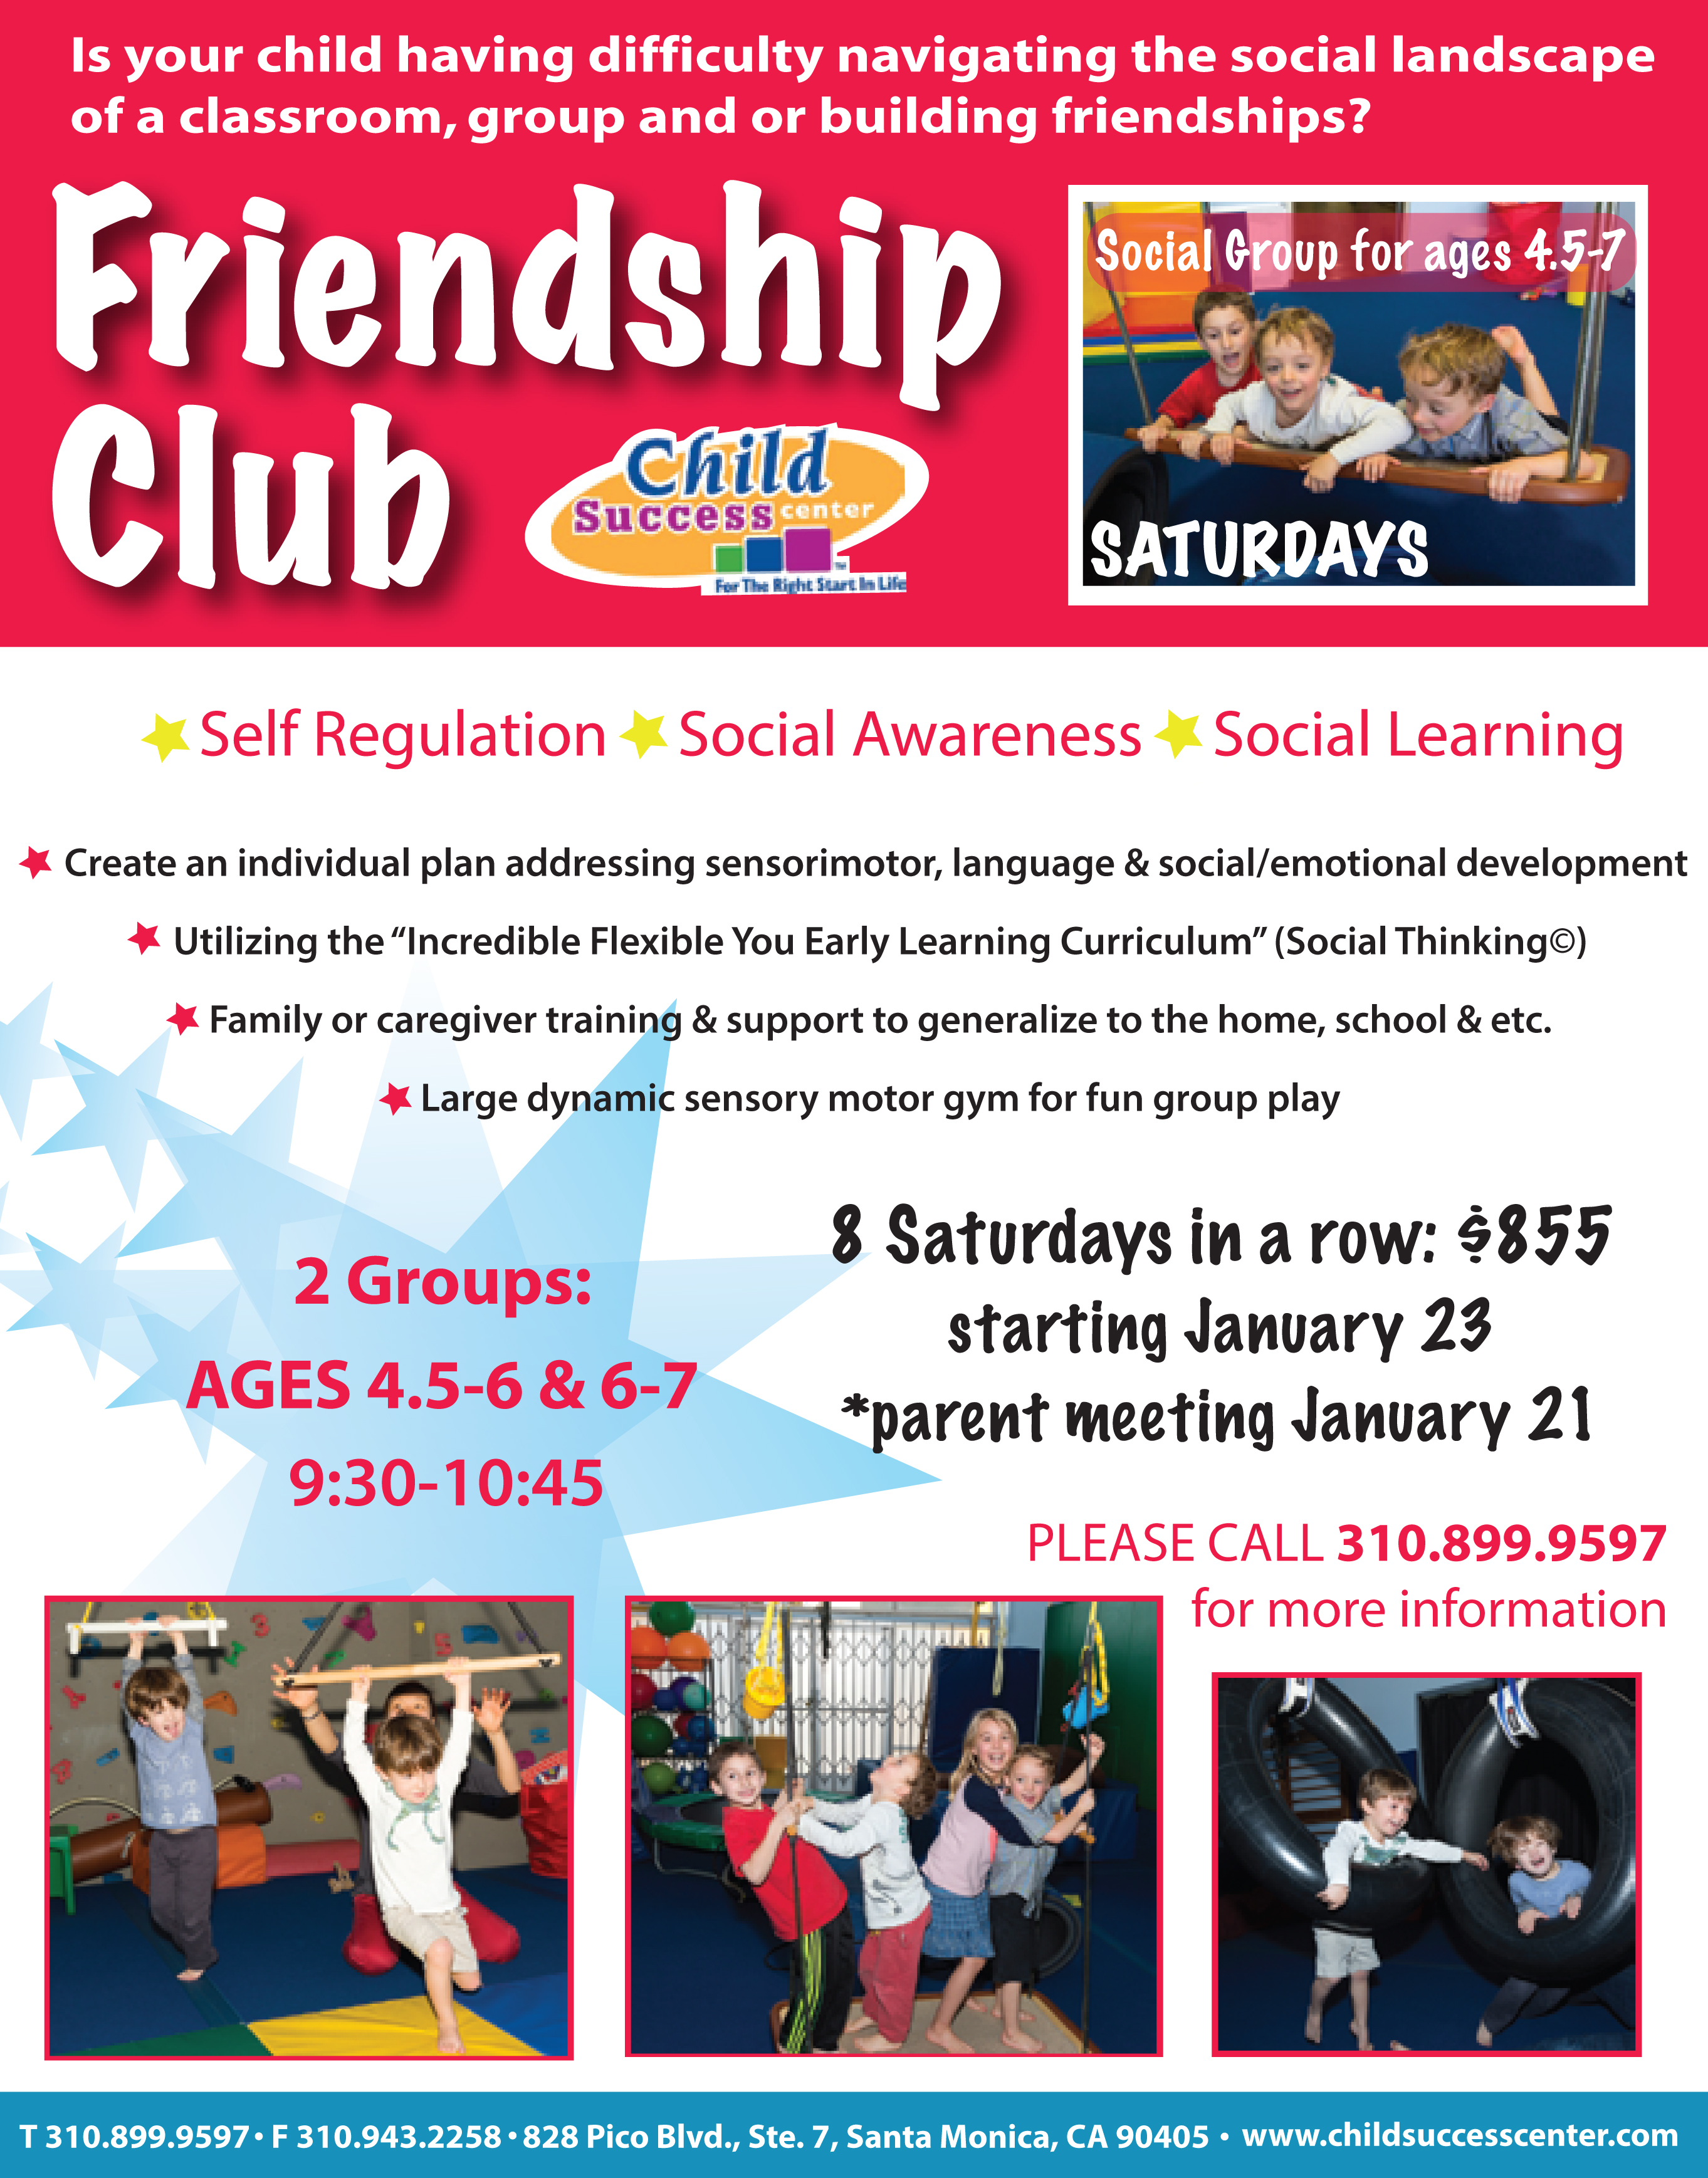 Child Success Center Friendship Club - Winter 2016 Session